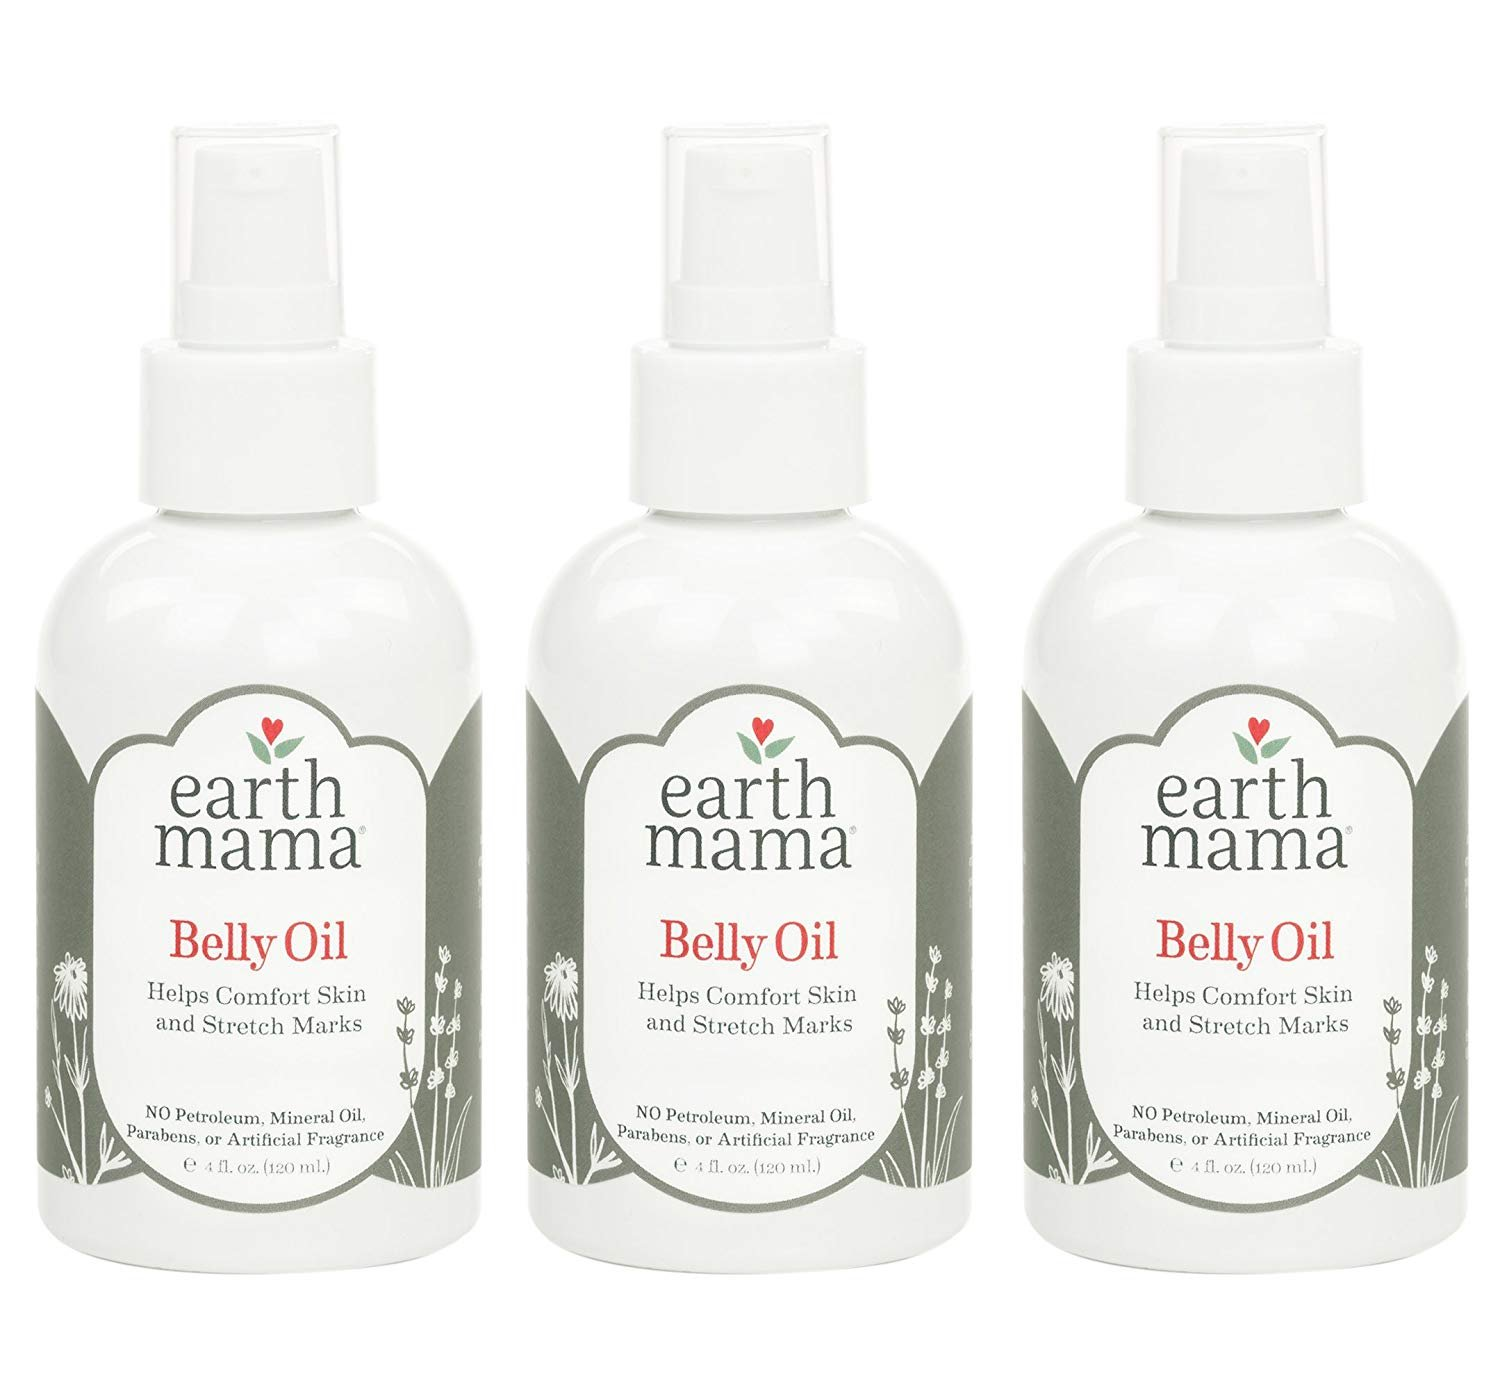 Earth Mama Angel Baby Natural Stretch Oil, 3 Pack - 4 Oz. (120 ml)